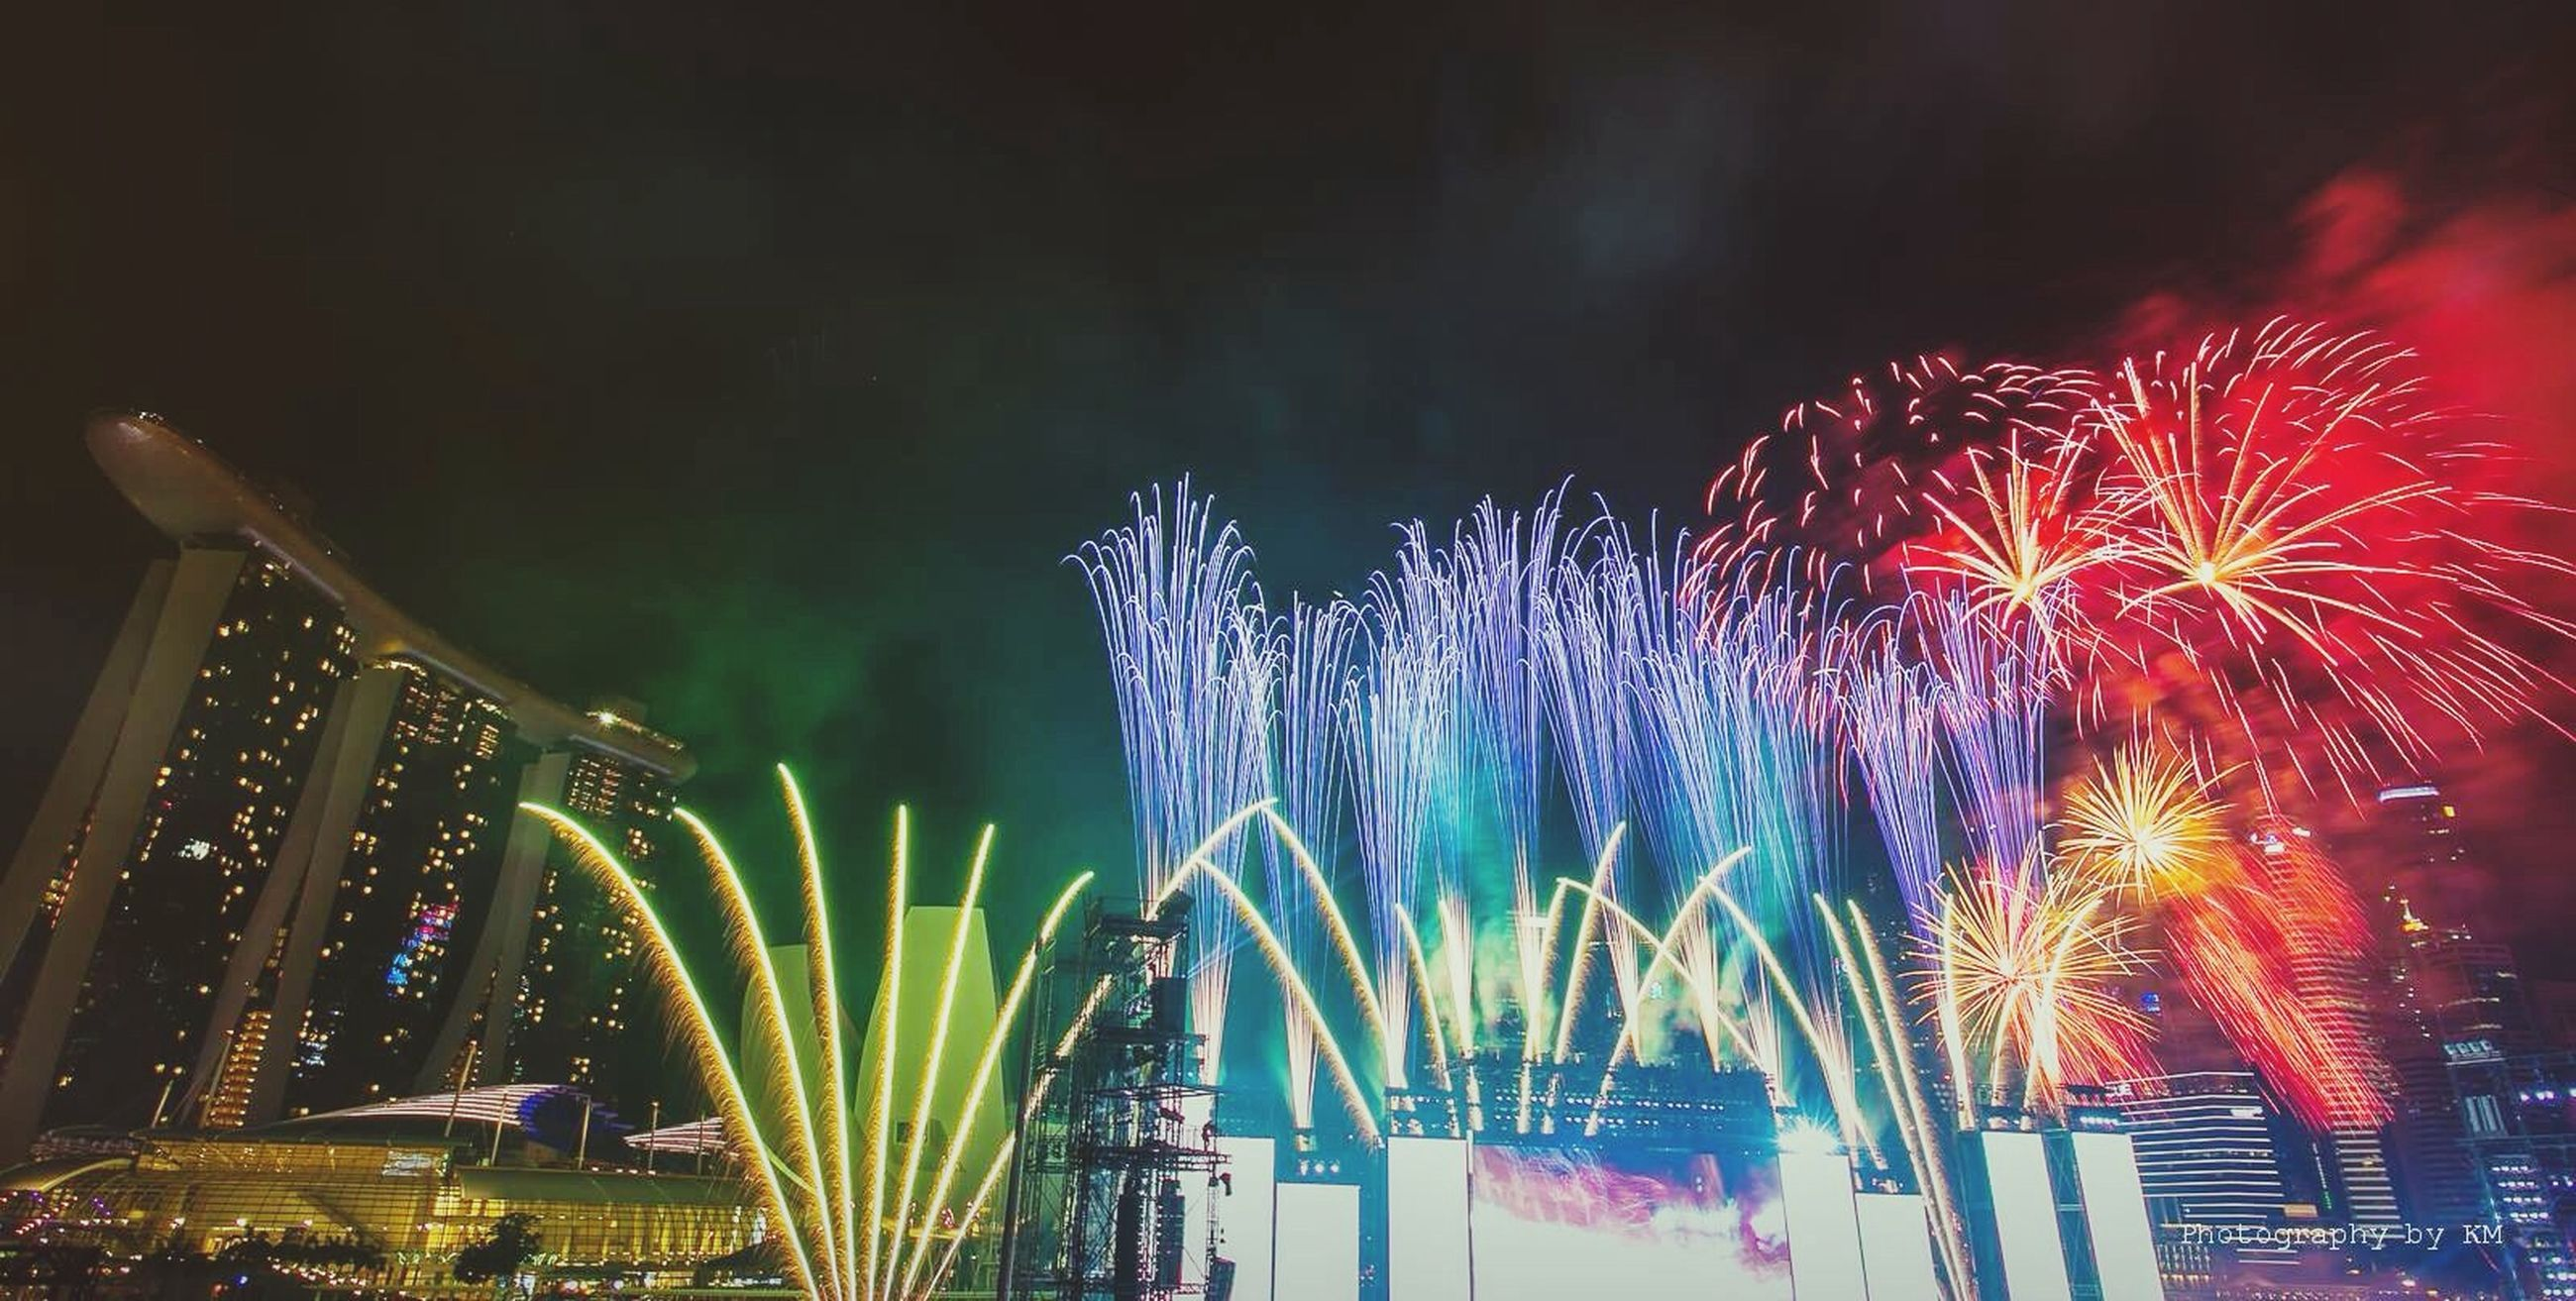 illuminated, night, celebration, firework display, long exposure, multi colored, exploding, arts culture and entertainment, firework - man made object, building exterior, motion, sky, built structure, low angle view, event, architecture, blurred motion, firework, city, celebration event